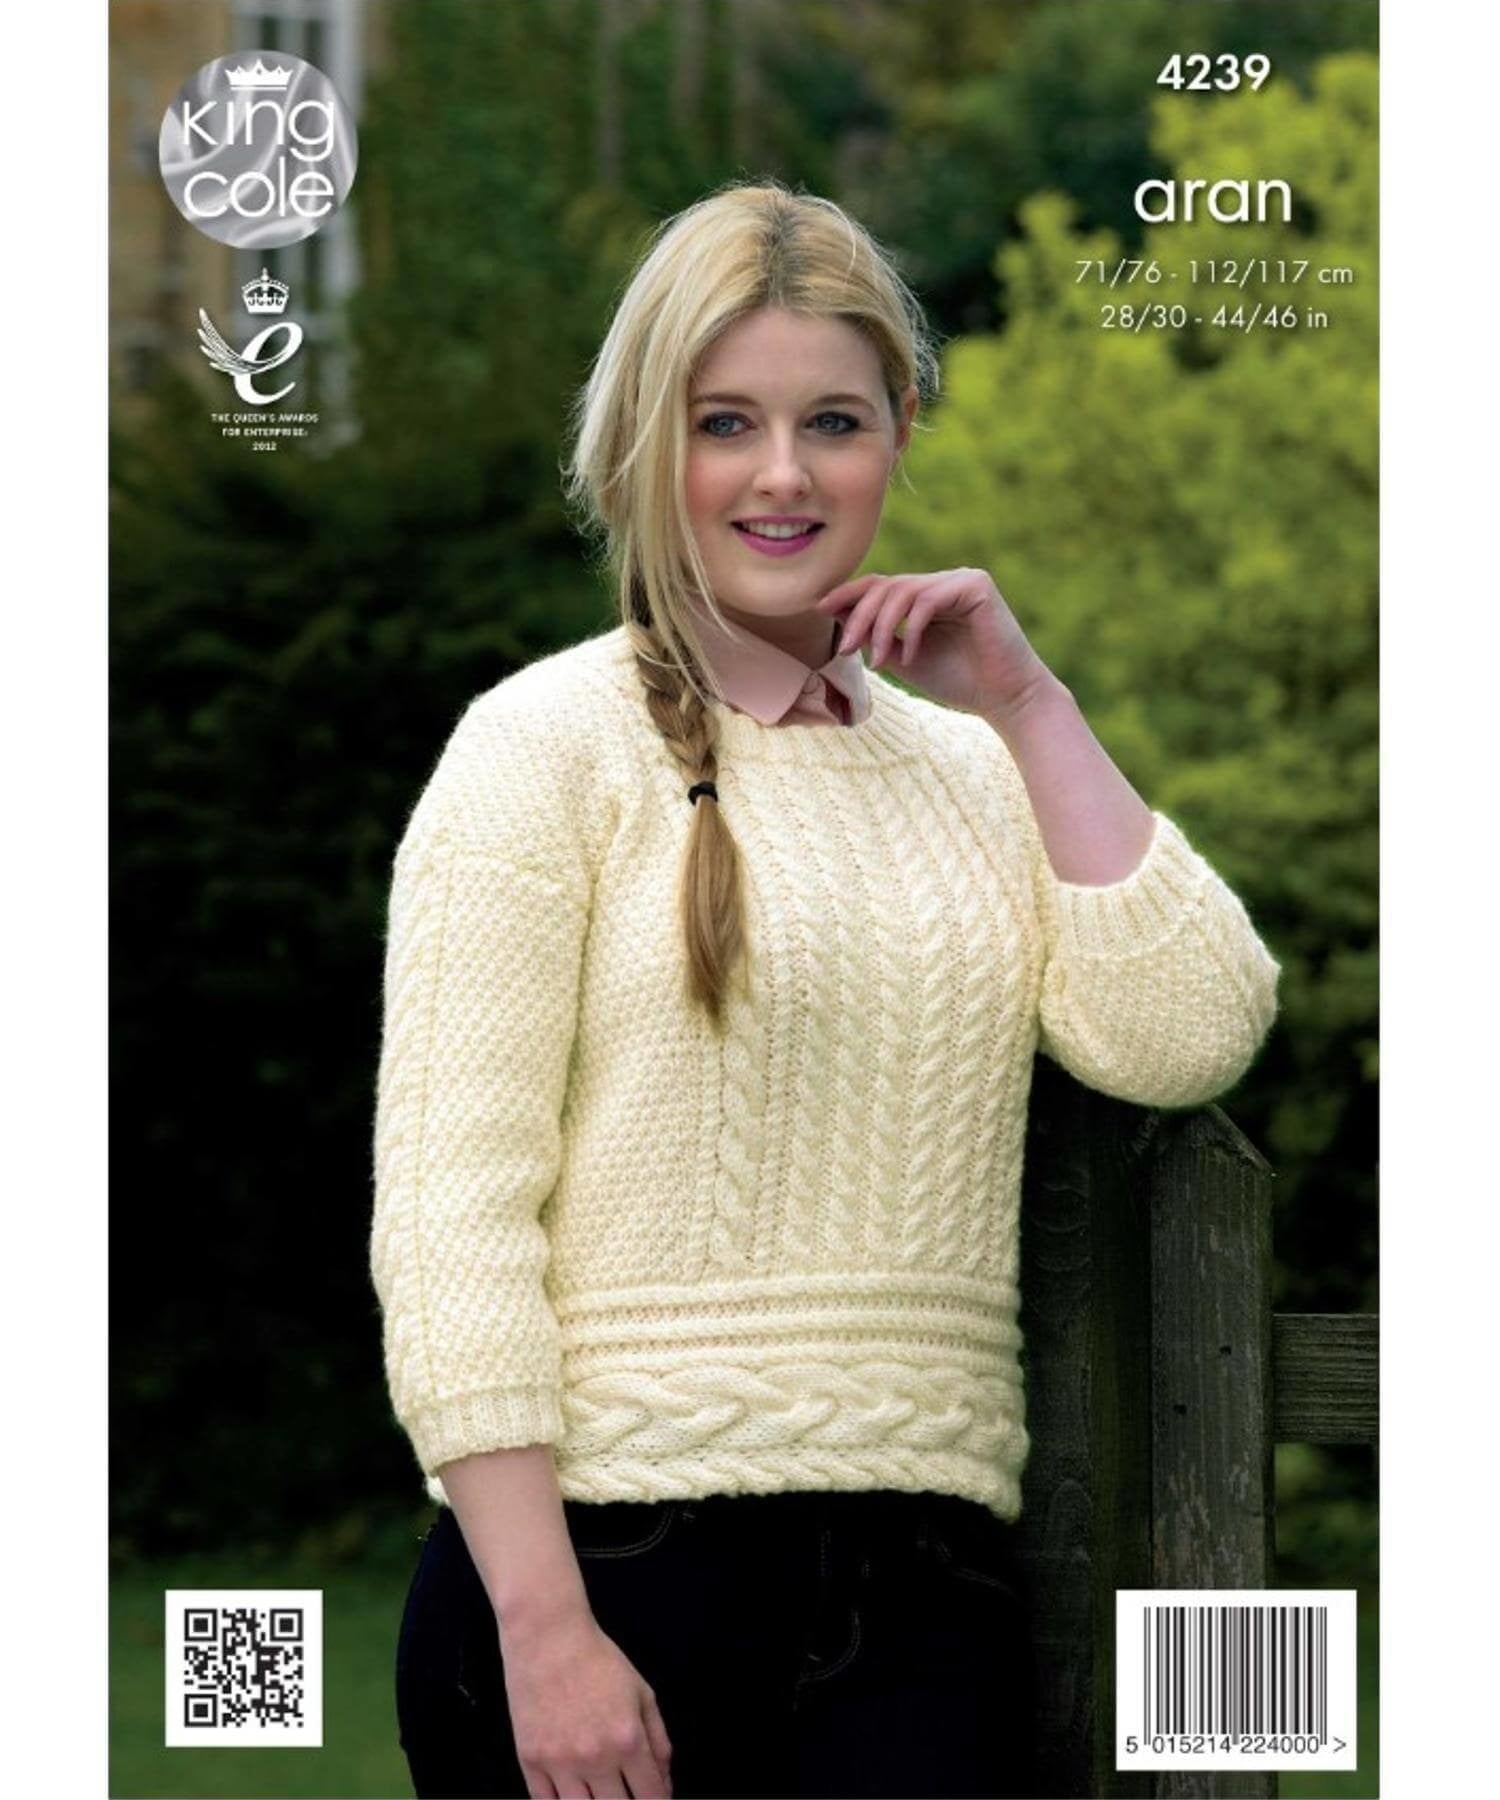 King Cole Aran Pattern 4239 - Irish Crafts